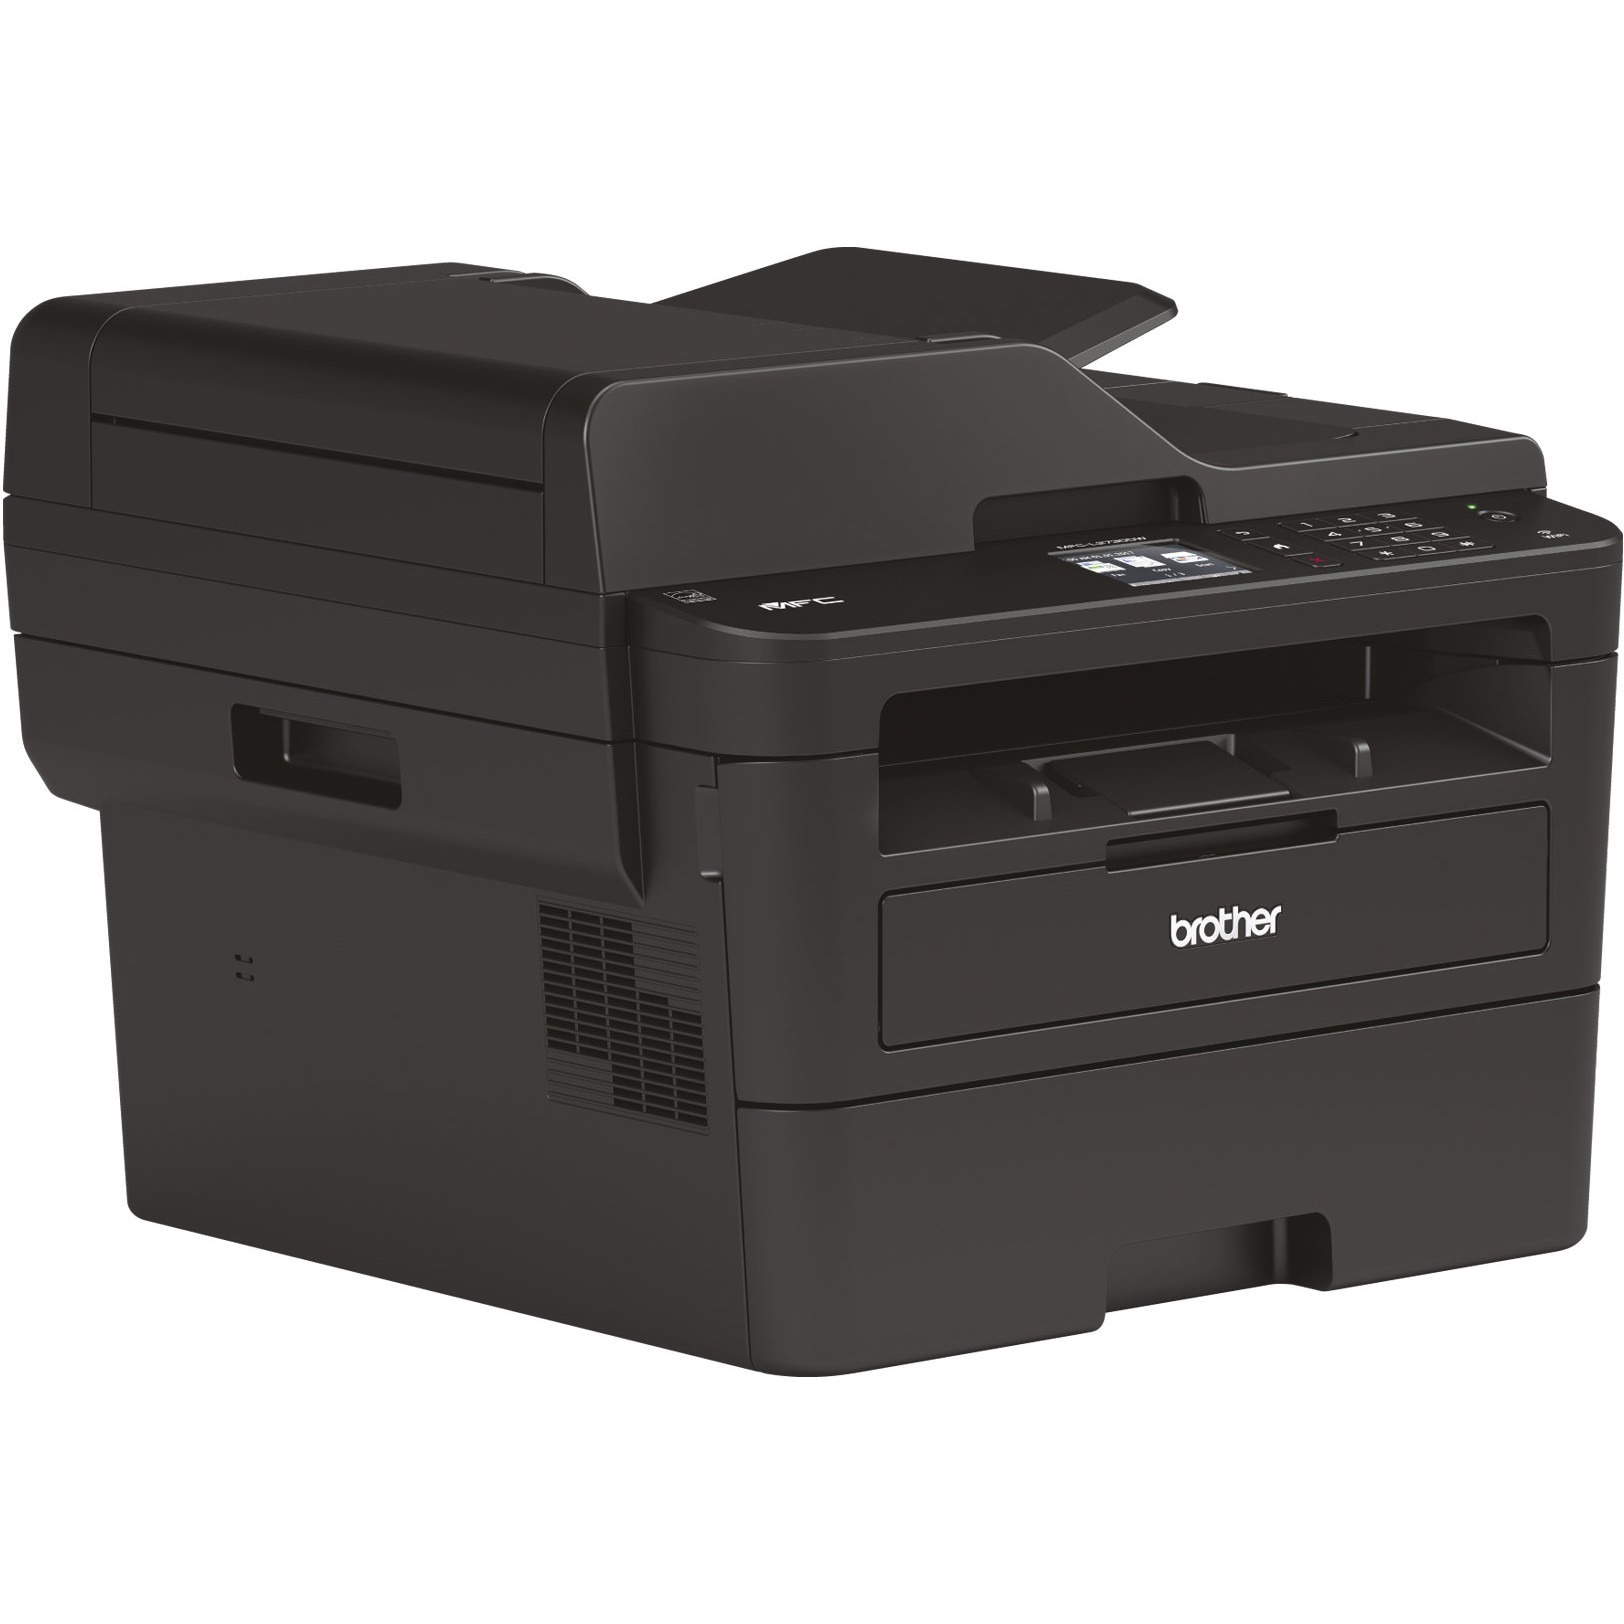 Brother MFC-L2730DW Laser Multifunction Printer - Monochrome